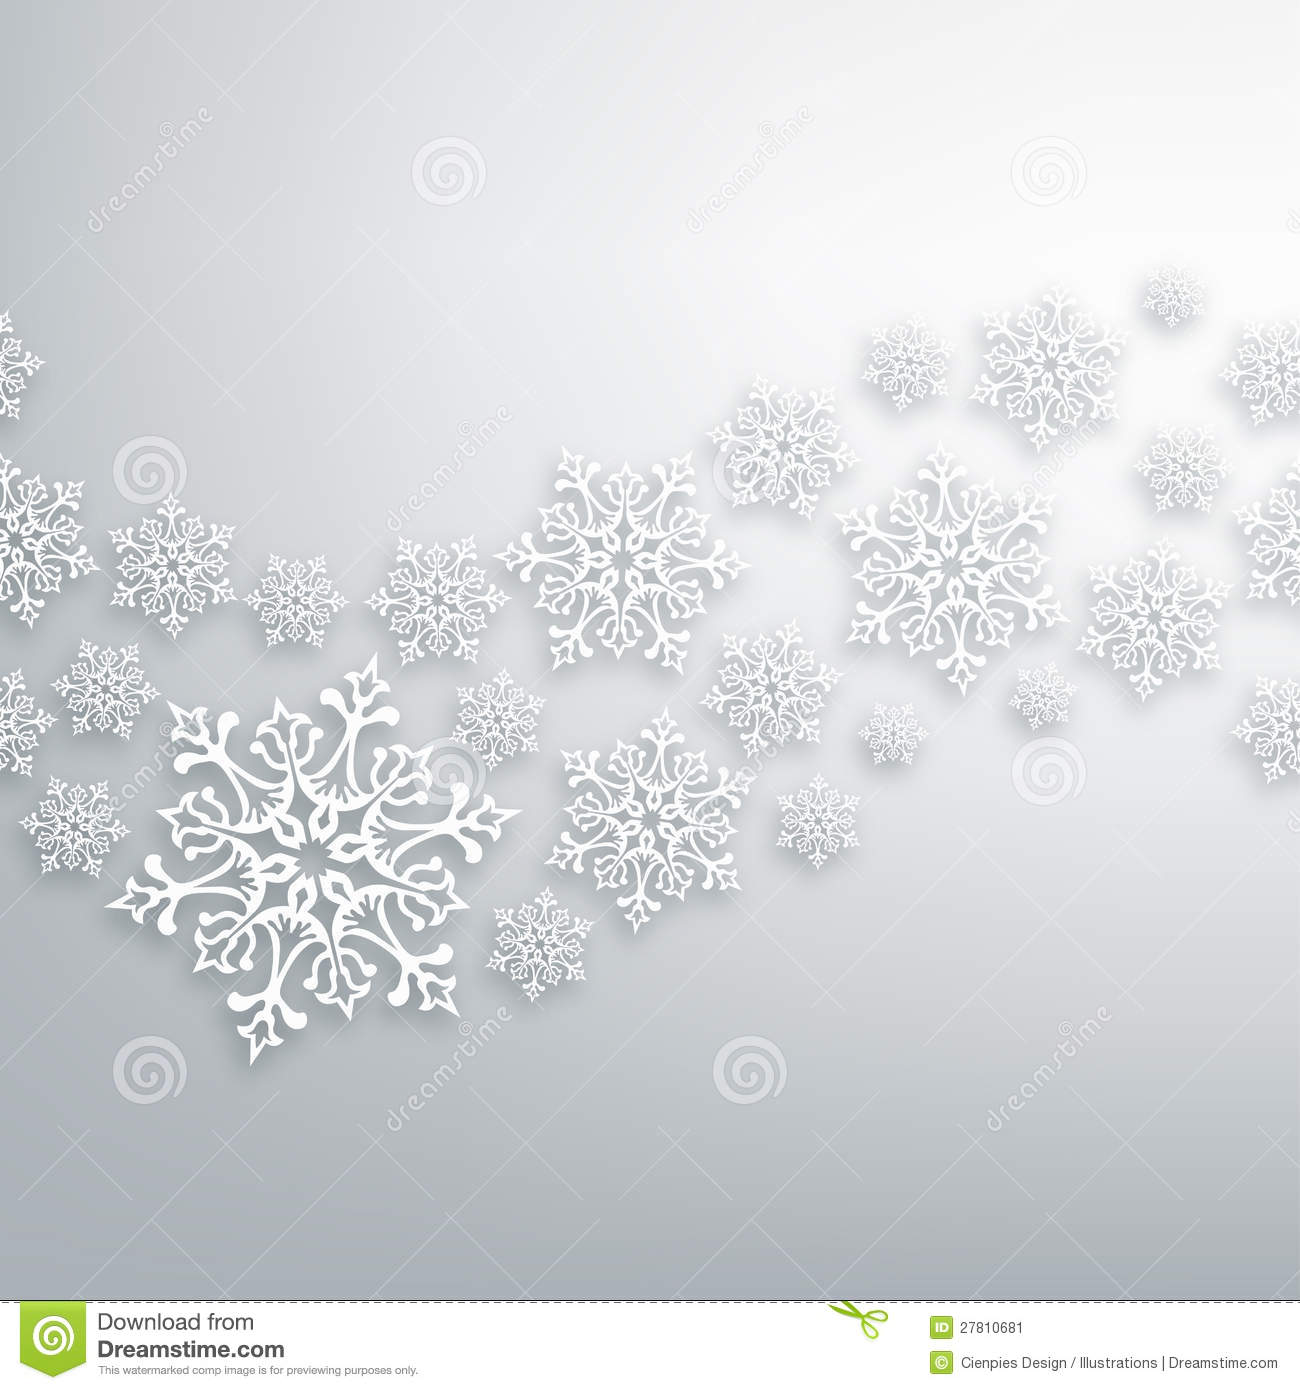 With white christmas background and snow vector vector background - White Christmas Snowflakes Pattern Stock Image Image